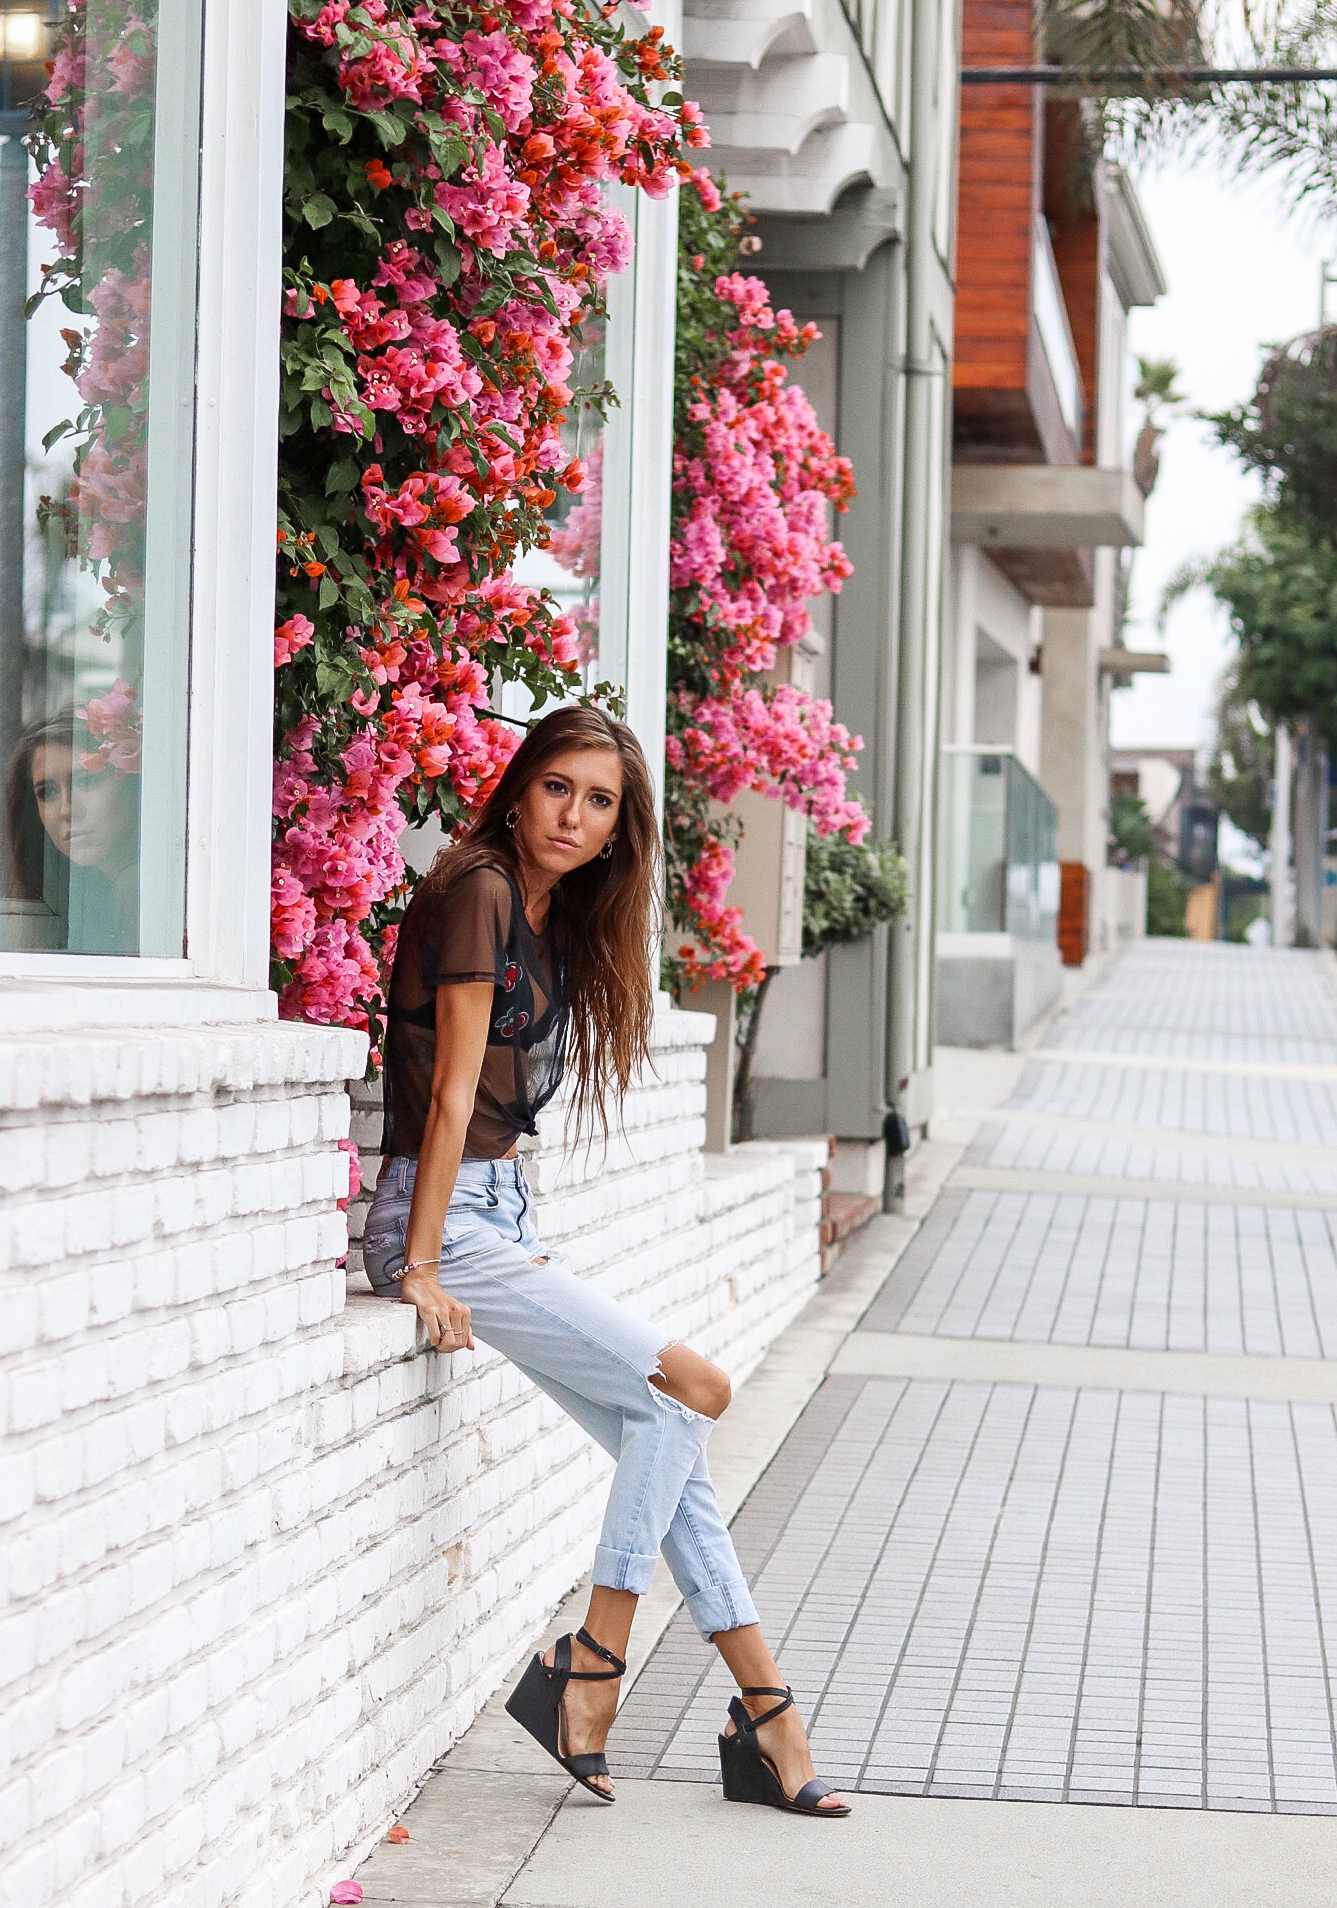 The-Hungarian-Brunette-Outfit-Inspo-OOTD-5-of-58.jpg